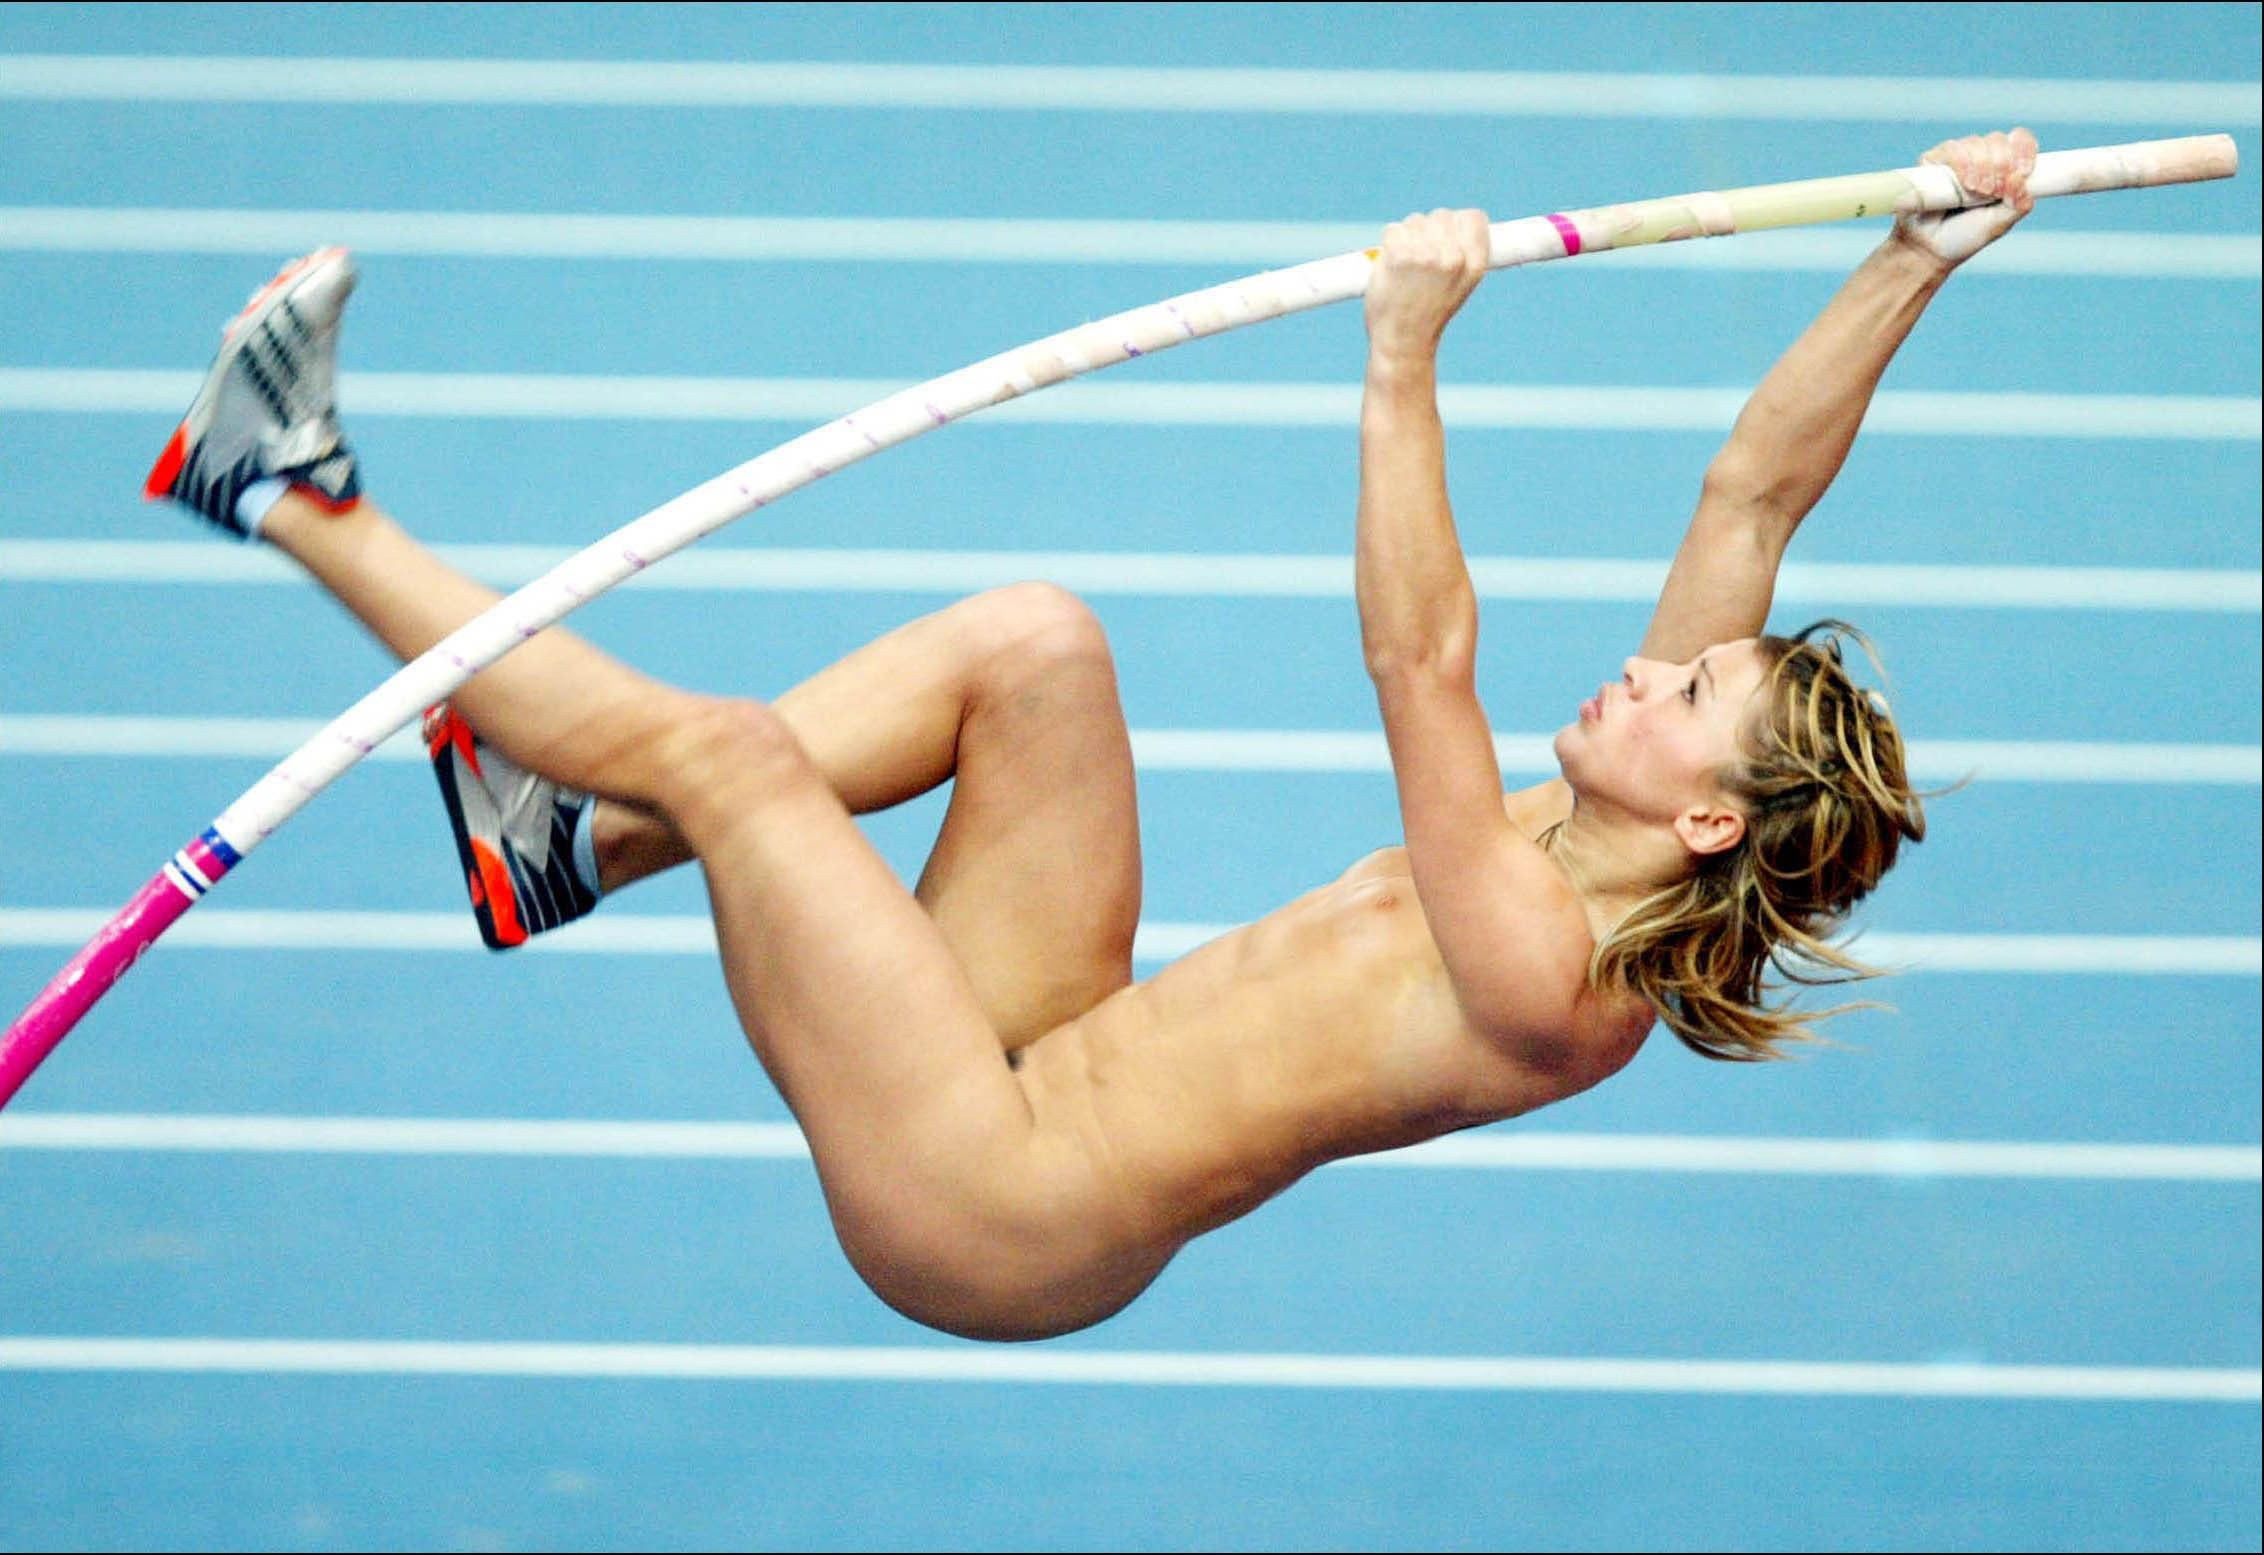 Improbable! French pole vaulter runs naked agree